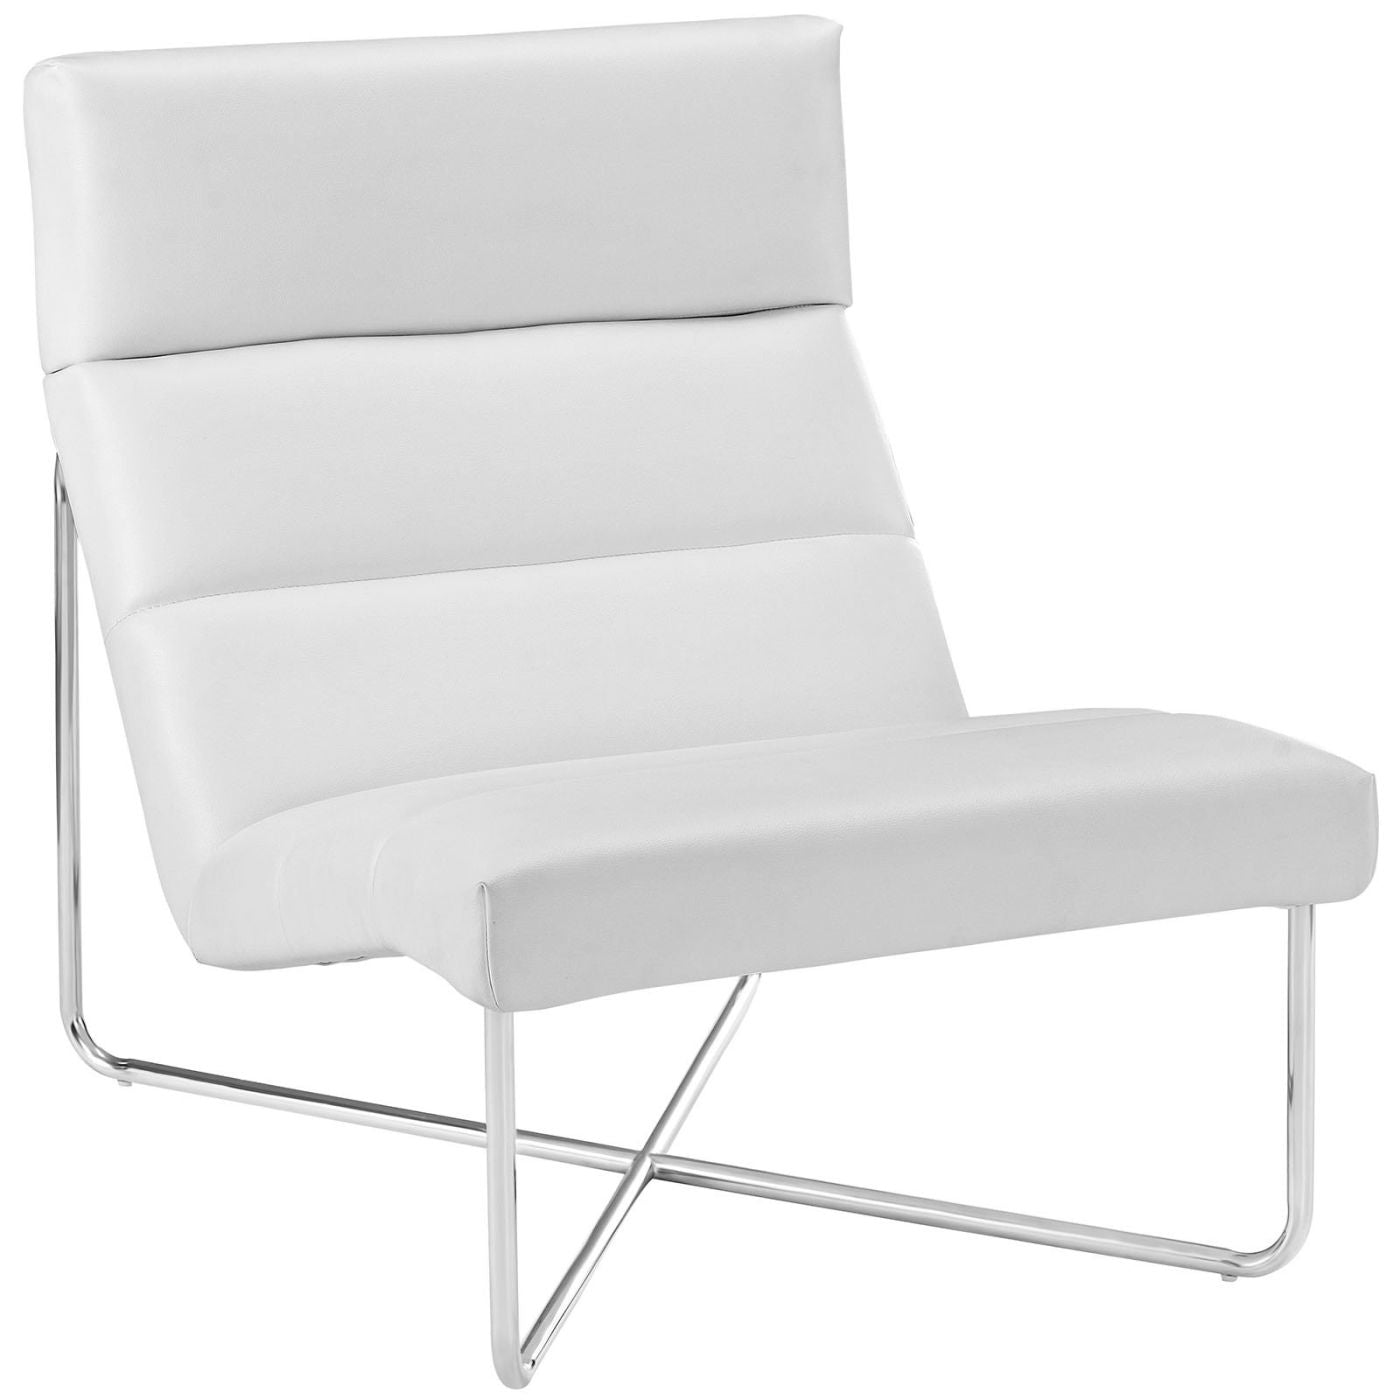 Reach Upholstered Faux Leather Lounge Chair White ...